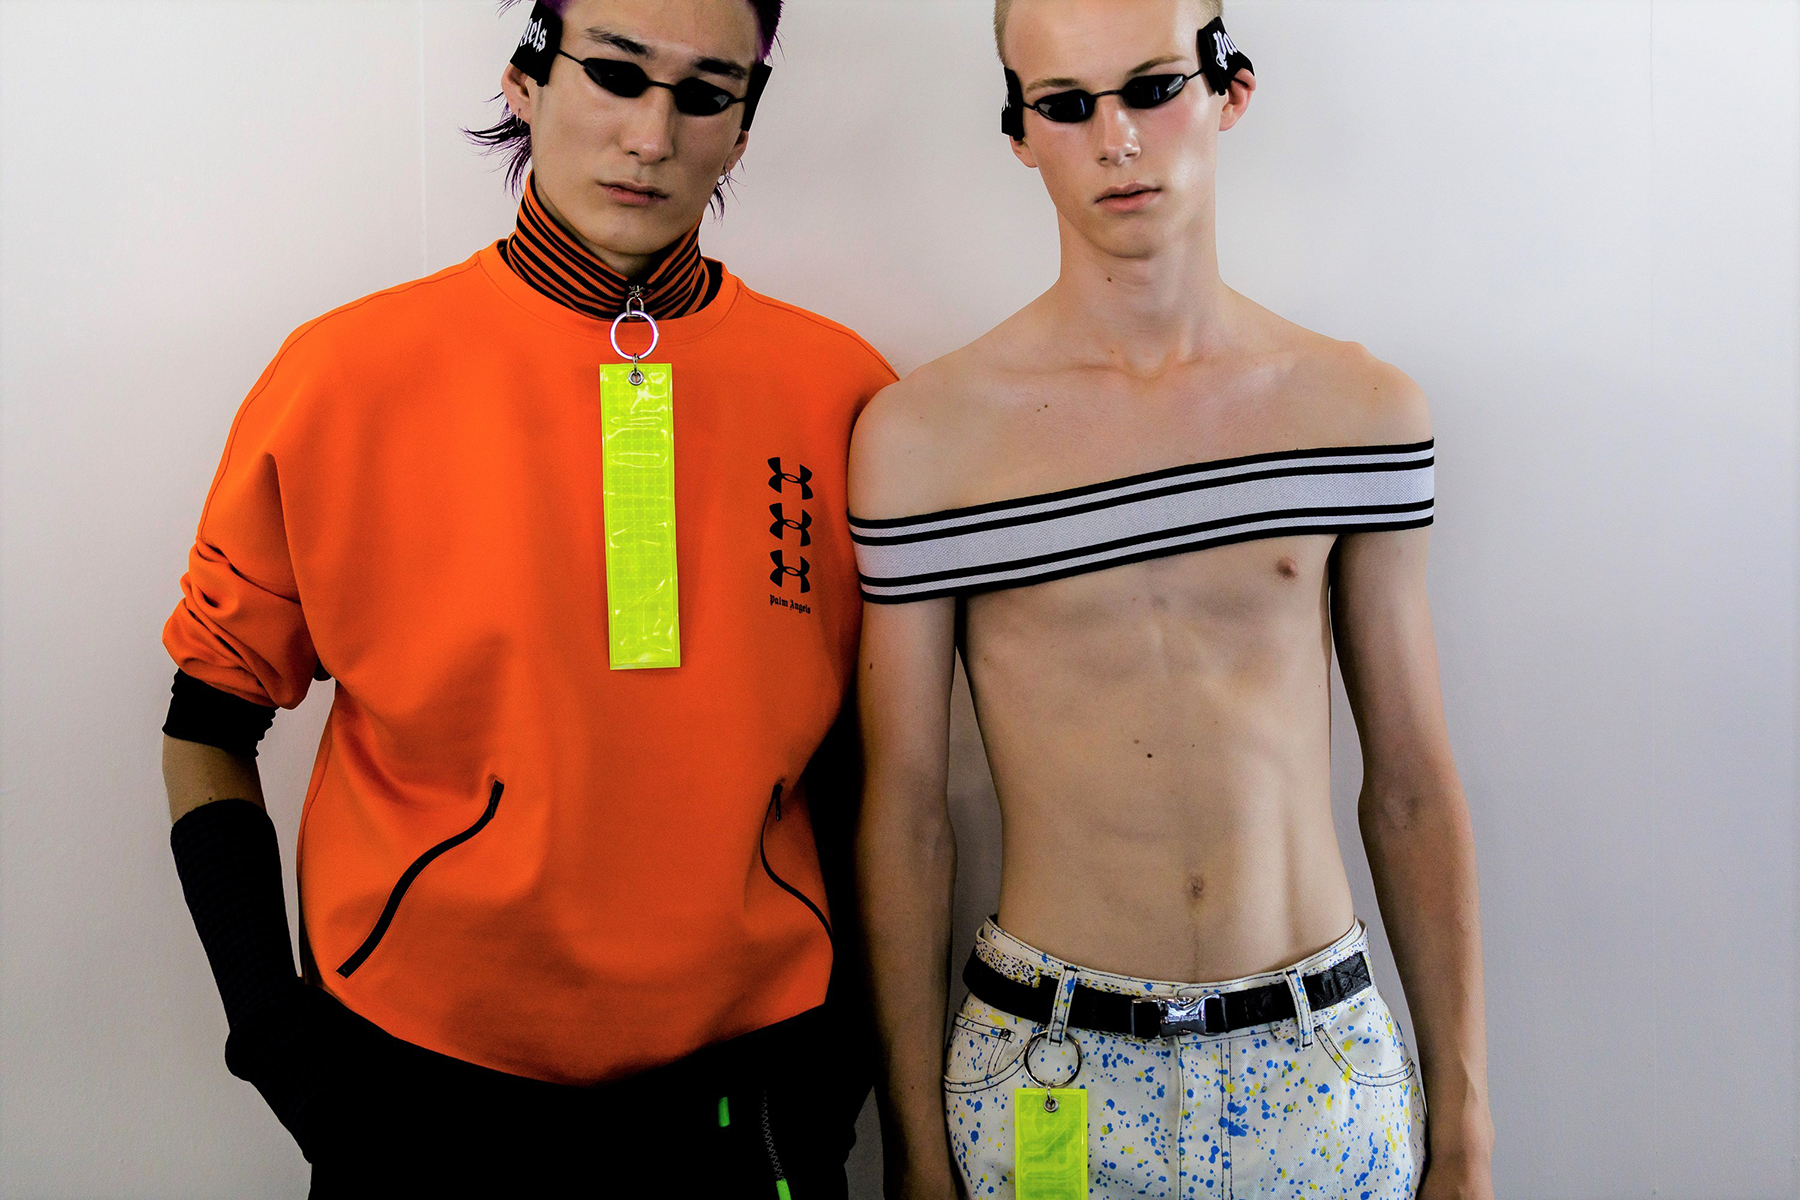 palm angels spring summer 2019 milan fashion week orange shirt yelllow badge tanning bed glasses goggles painted denim